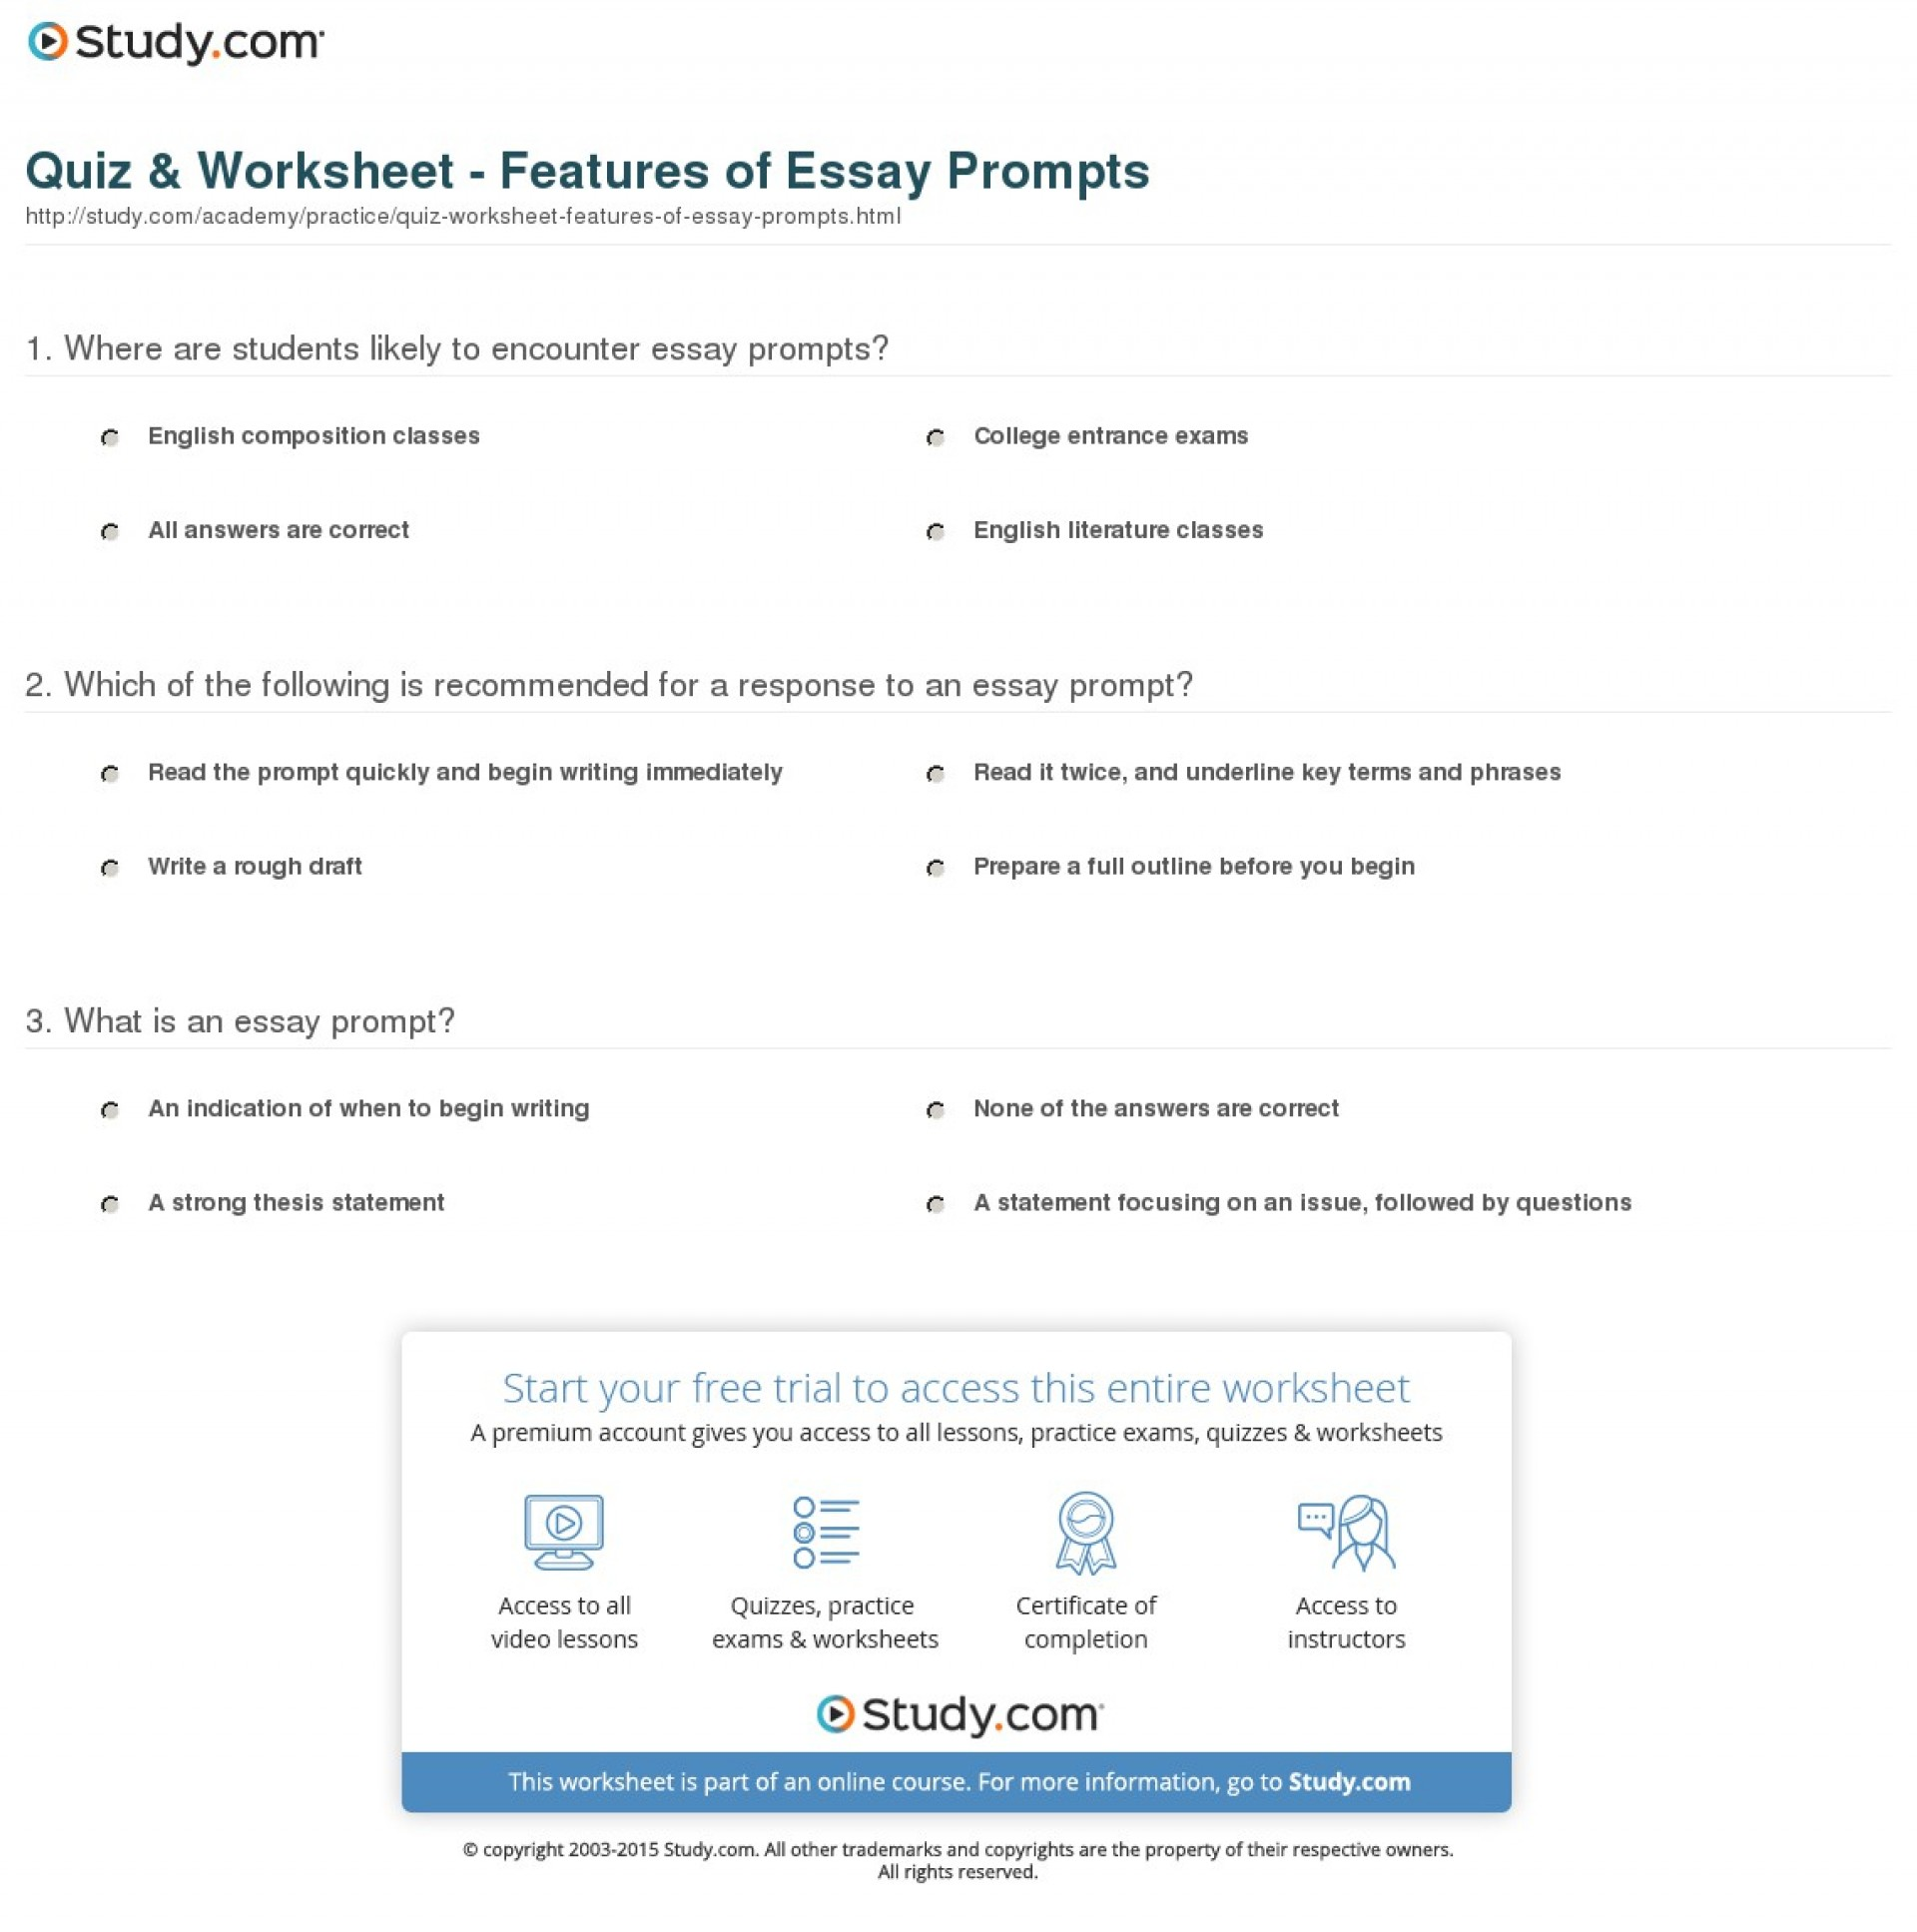 002 Essay Example Prompt Definition Quiz Worksheet Features Of Fascinating 1920